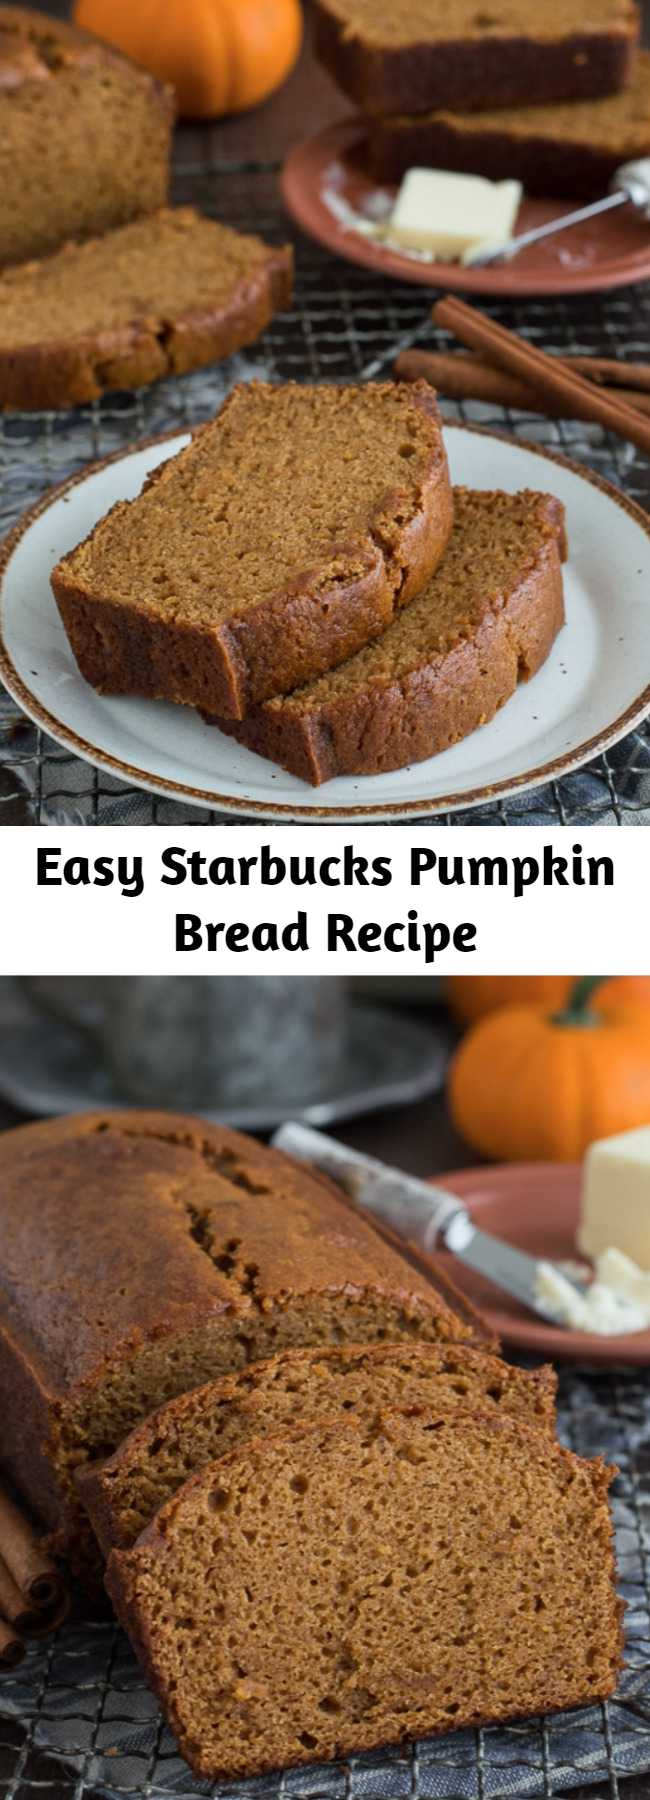 Easy Starbucks Pumpkin Bread Recipe - The easiest pumpkin bread with 12 ingredients and tastes just like Starbucks Pumpkin Pound Cake! Pumpkin bread takes 15 minutes to prep, you will want to share this with friends and family! Can be made in muffin, mini muffin or mini loaf pans. #pumpkinbread #starbuckspumpkinbread #pumpkinloaf #pumpkinpoundcake